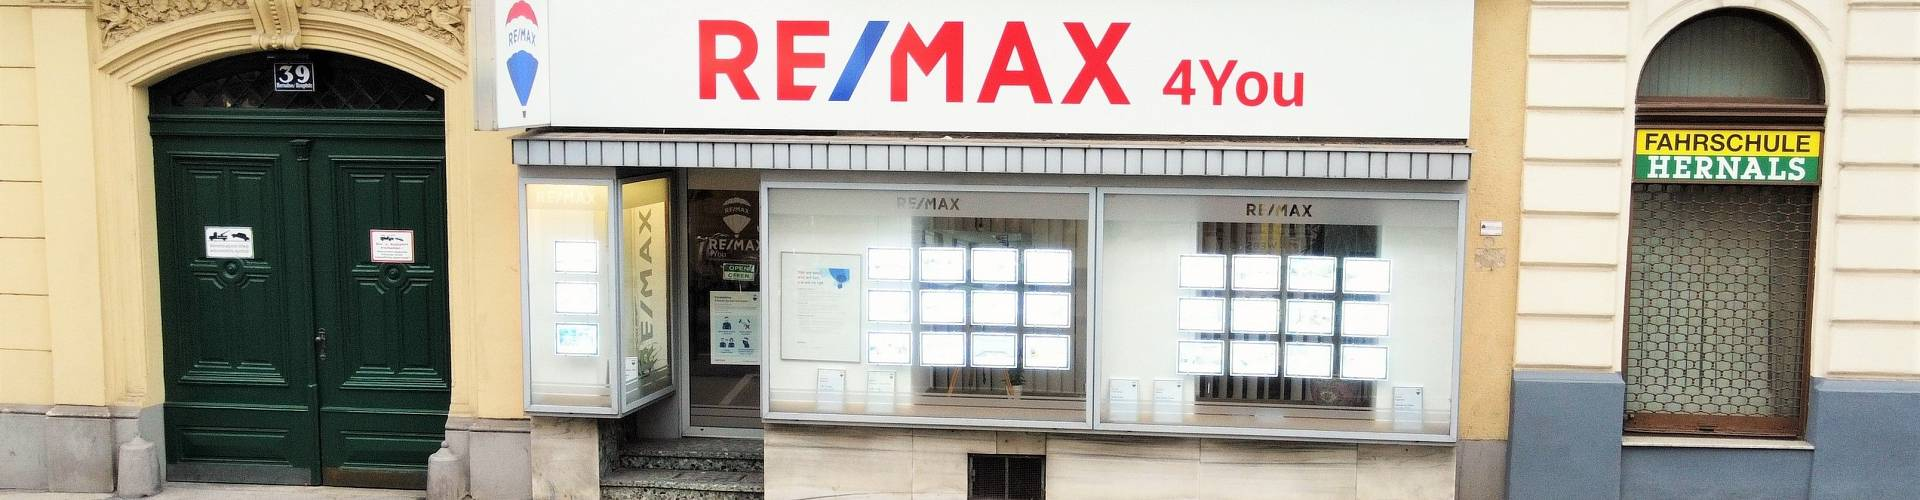 RE/MAX 4You